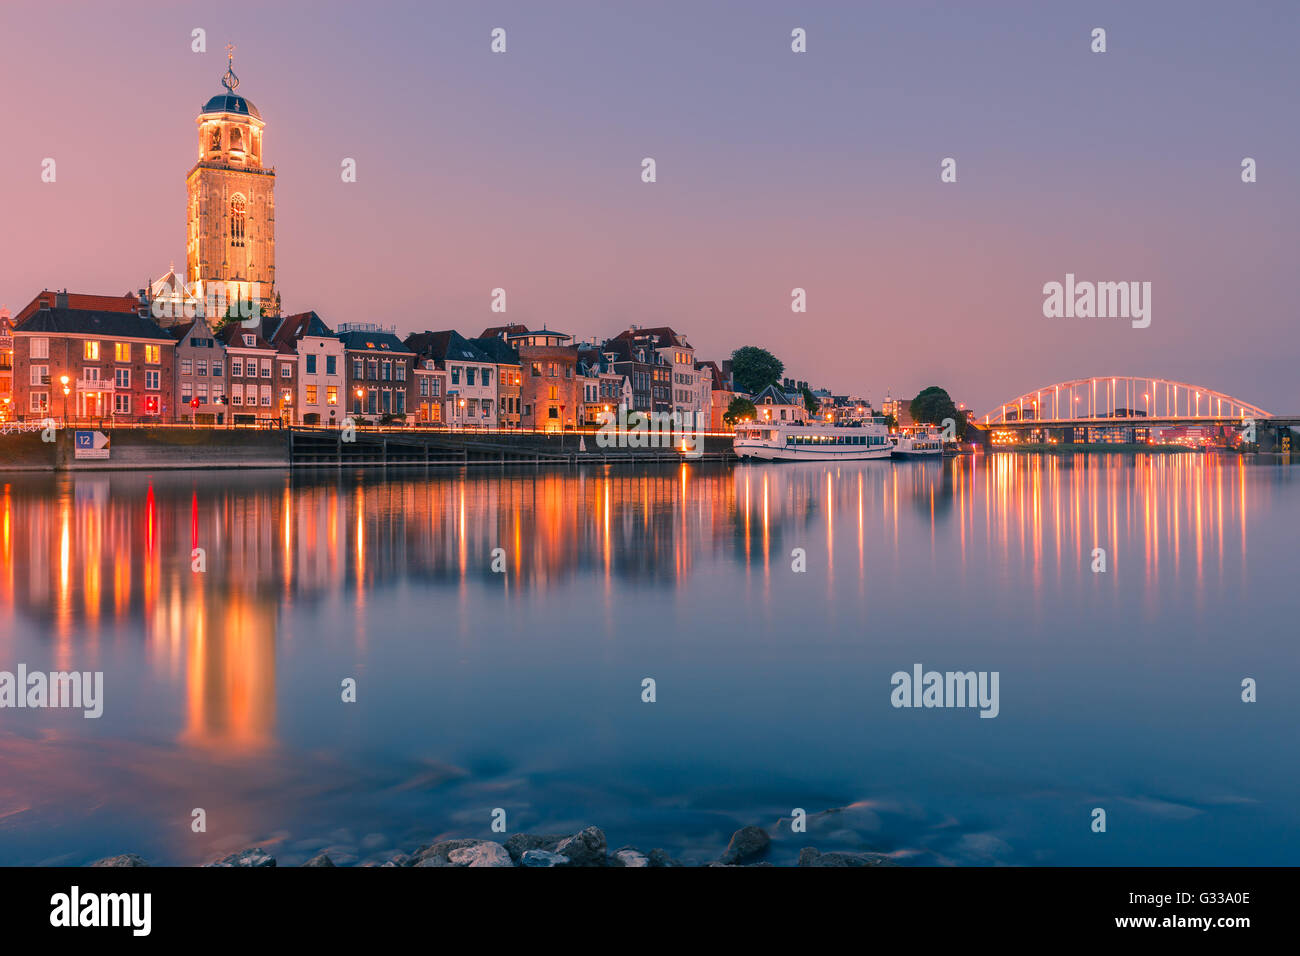 The old historic town of Deventer along the river IJssel in the Netherlands Stock Photo